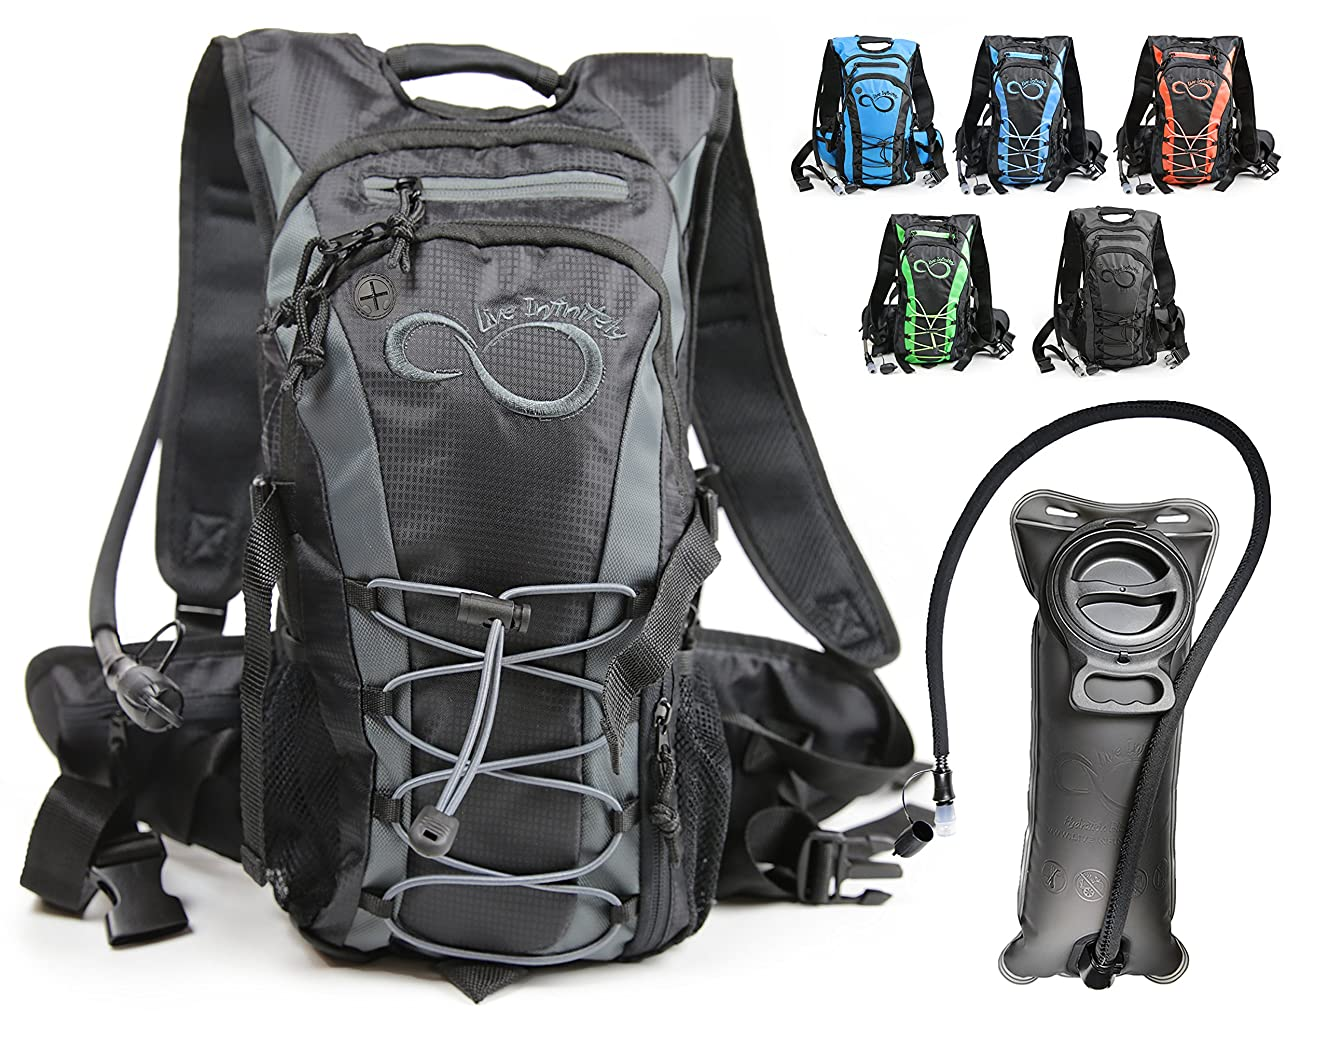 Live Infinitely Hydration Backpack 2L / 3L TPU Leak Proof Water Bladder- 600D Polyester -Adjustable Padded Shoulder, Chest & Waist Straps- Silicon Bite Tip & Shut Off Valve- Daypack Cycling & Hiking